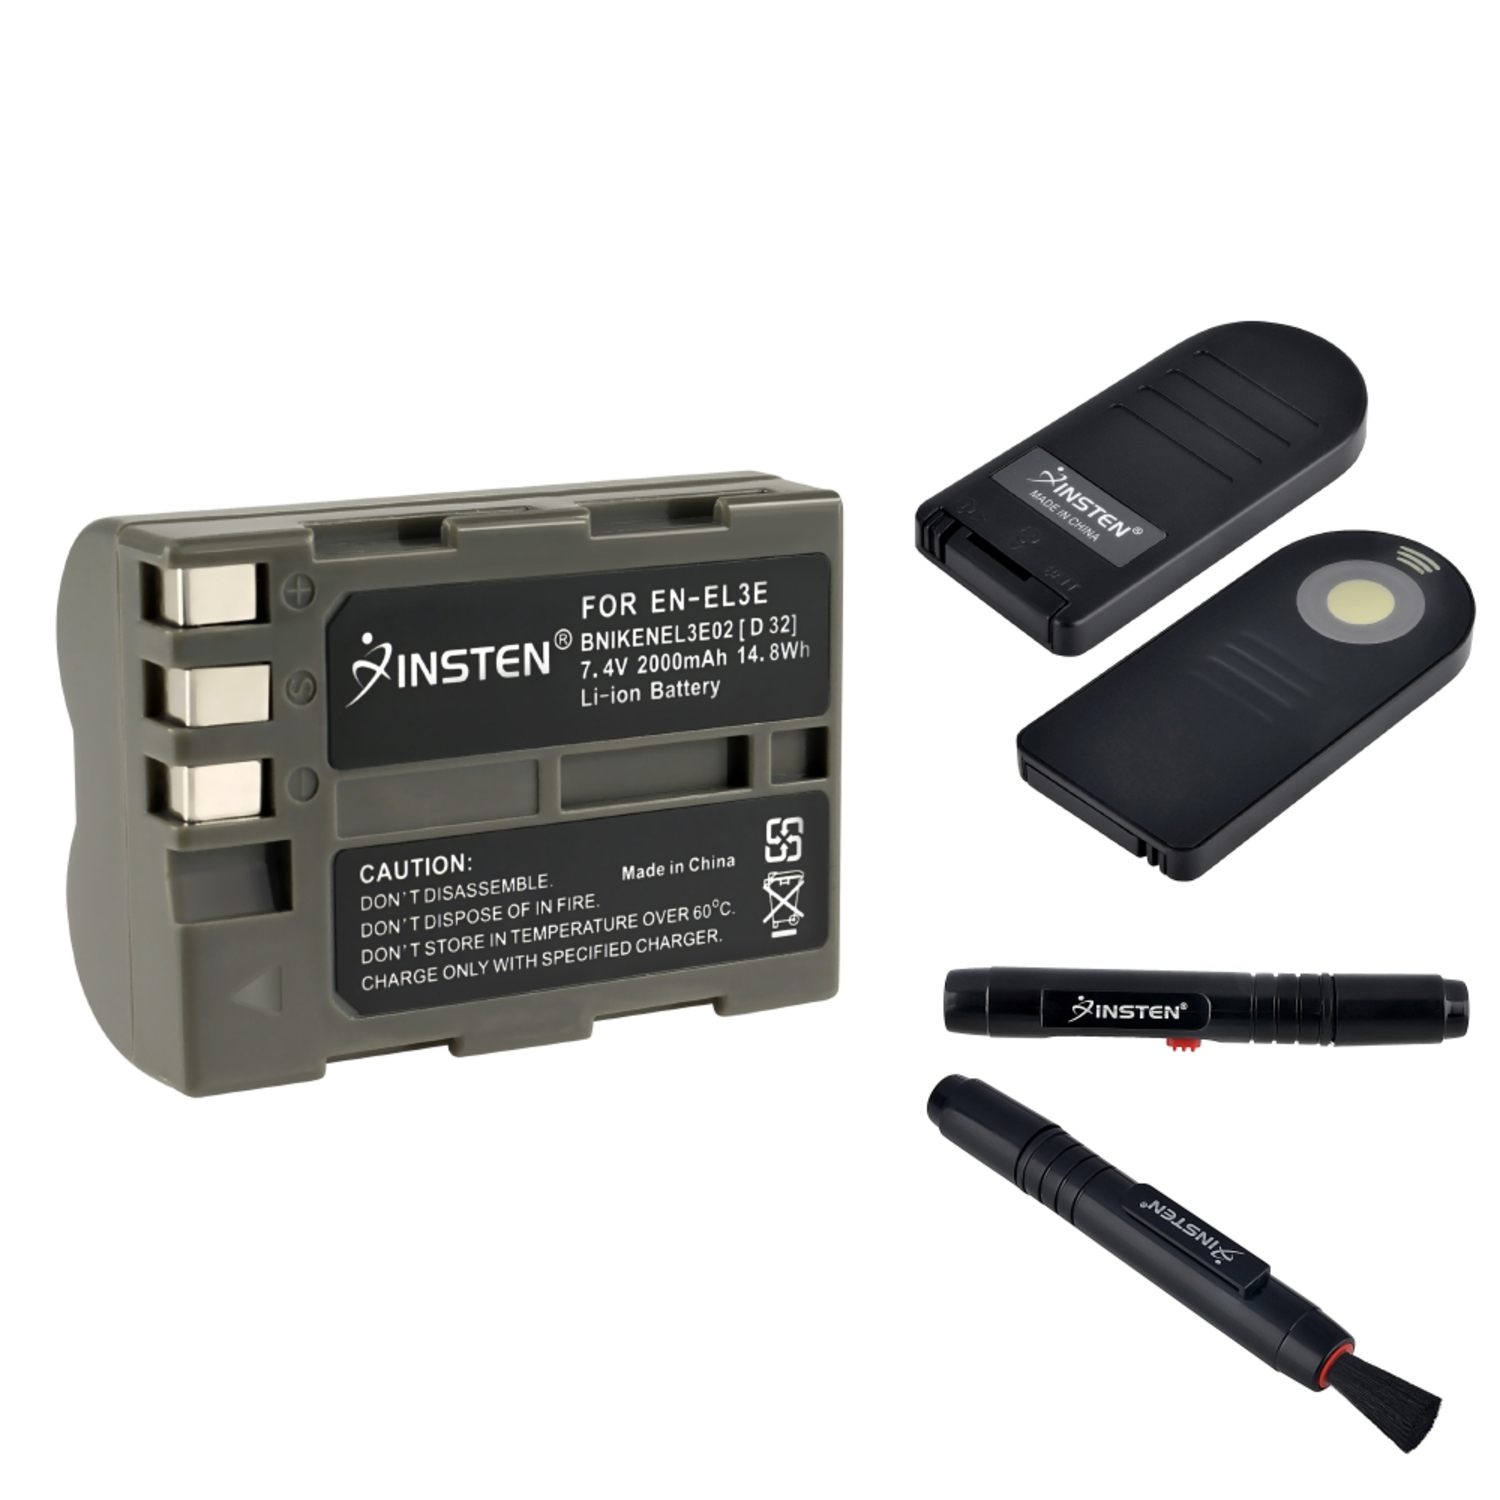 Insten For Nikon D70s Camera Lens Cleaning Pen+2x EN-EL3e Battery+ML-L3 Remote Control